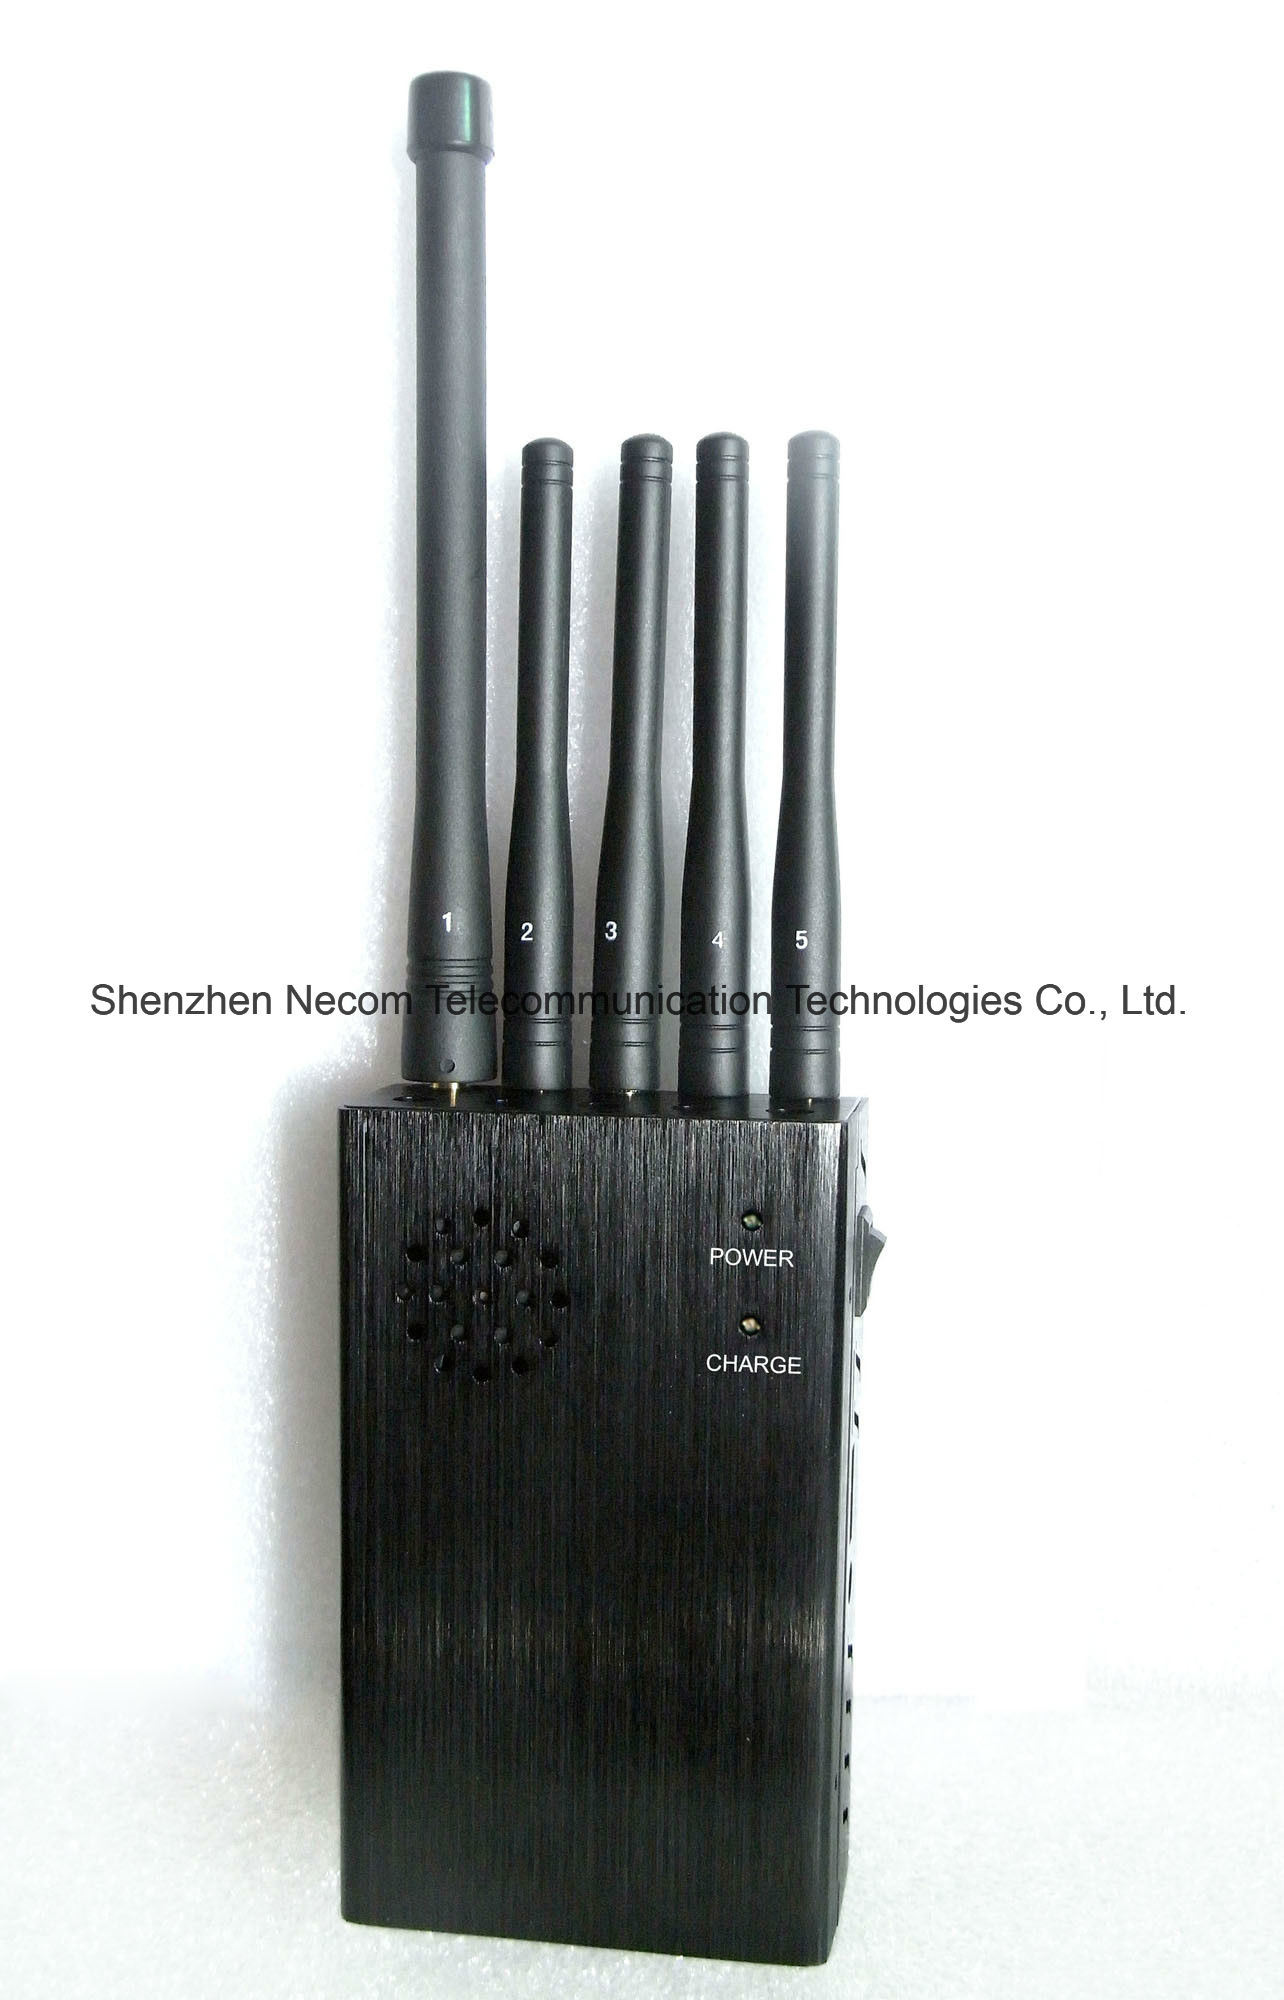 gps repeater jammer headphones don't - China 5 Antennas Handheld WiFi GPS Cell Phone Jammer, 5-Band Portable WiFi Bluetooth Wireless Video Cell Phone Jammer - China Portable Cellphone Jammer, GSM Jammer